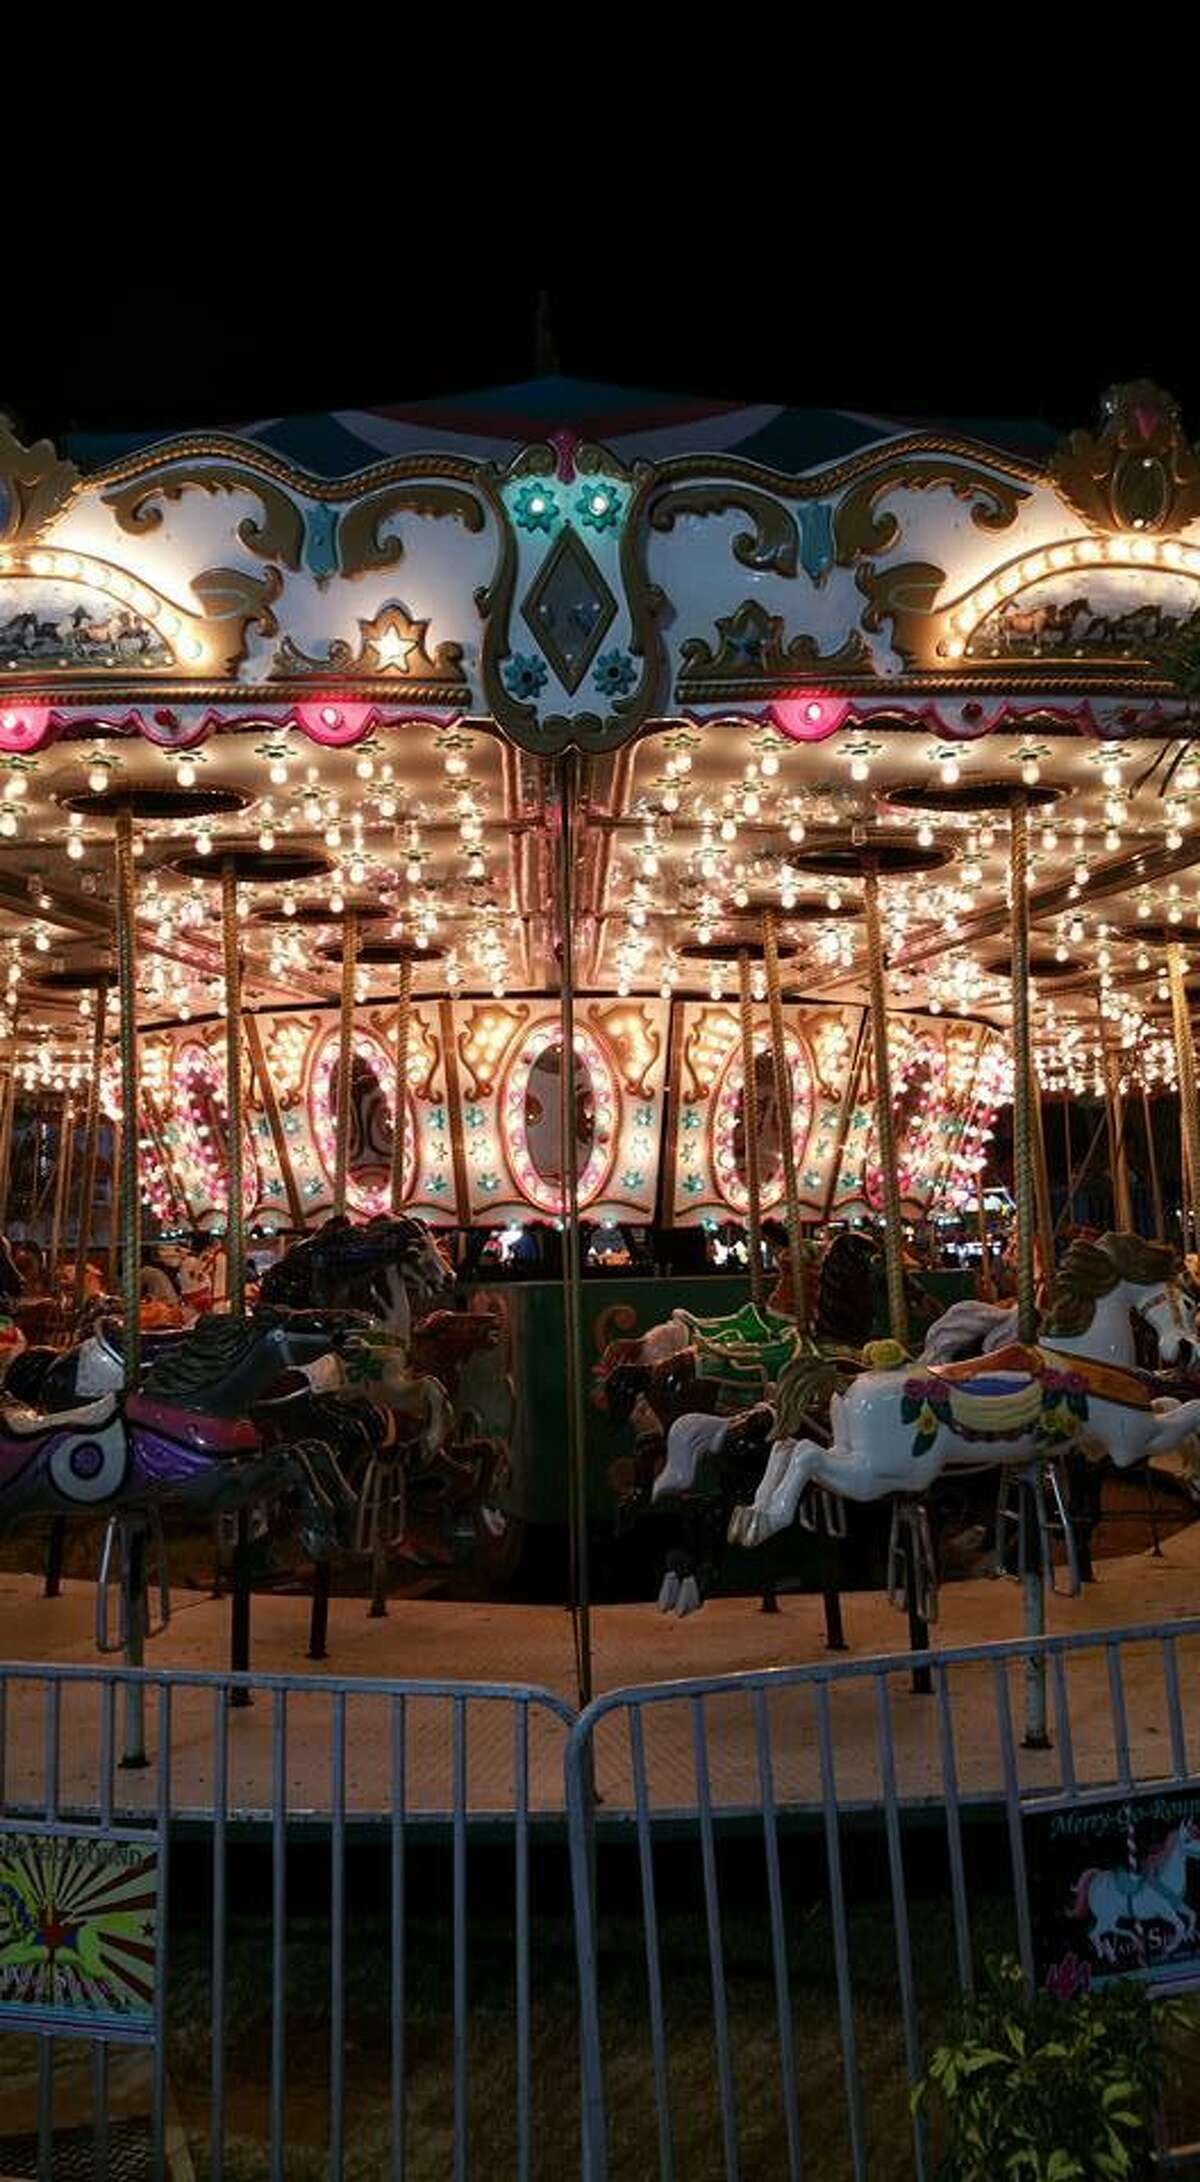 This is a file photo of the carousel being considered for Short Beach. It's owned by Marenna Amusements, which also operated midways and other outdoor amusements in the region.